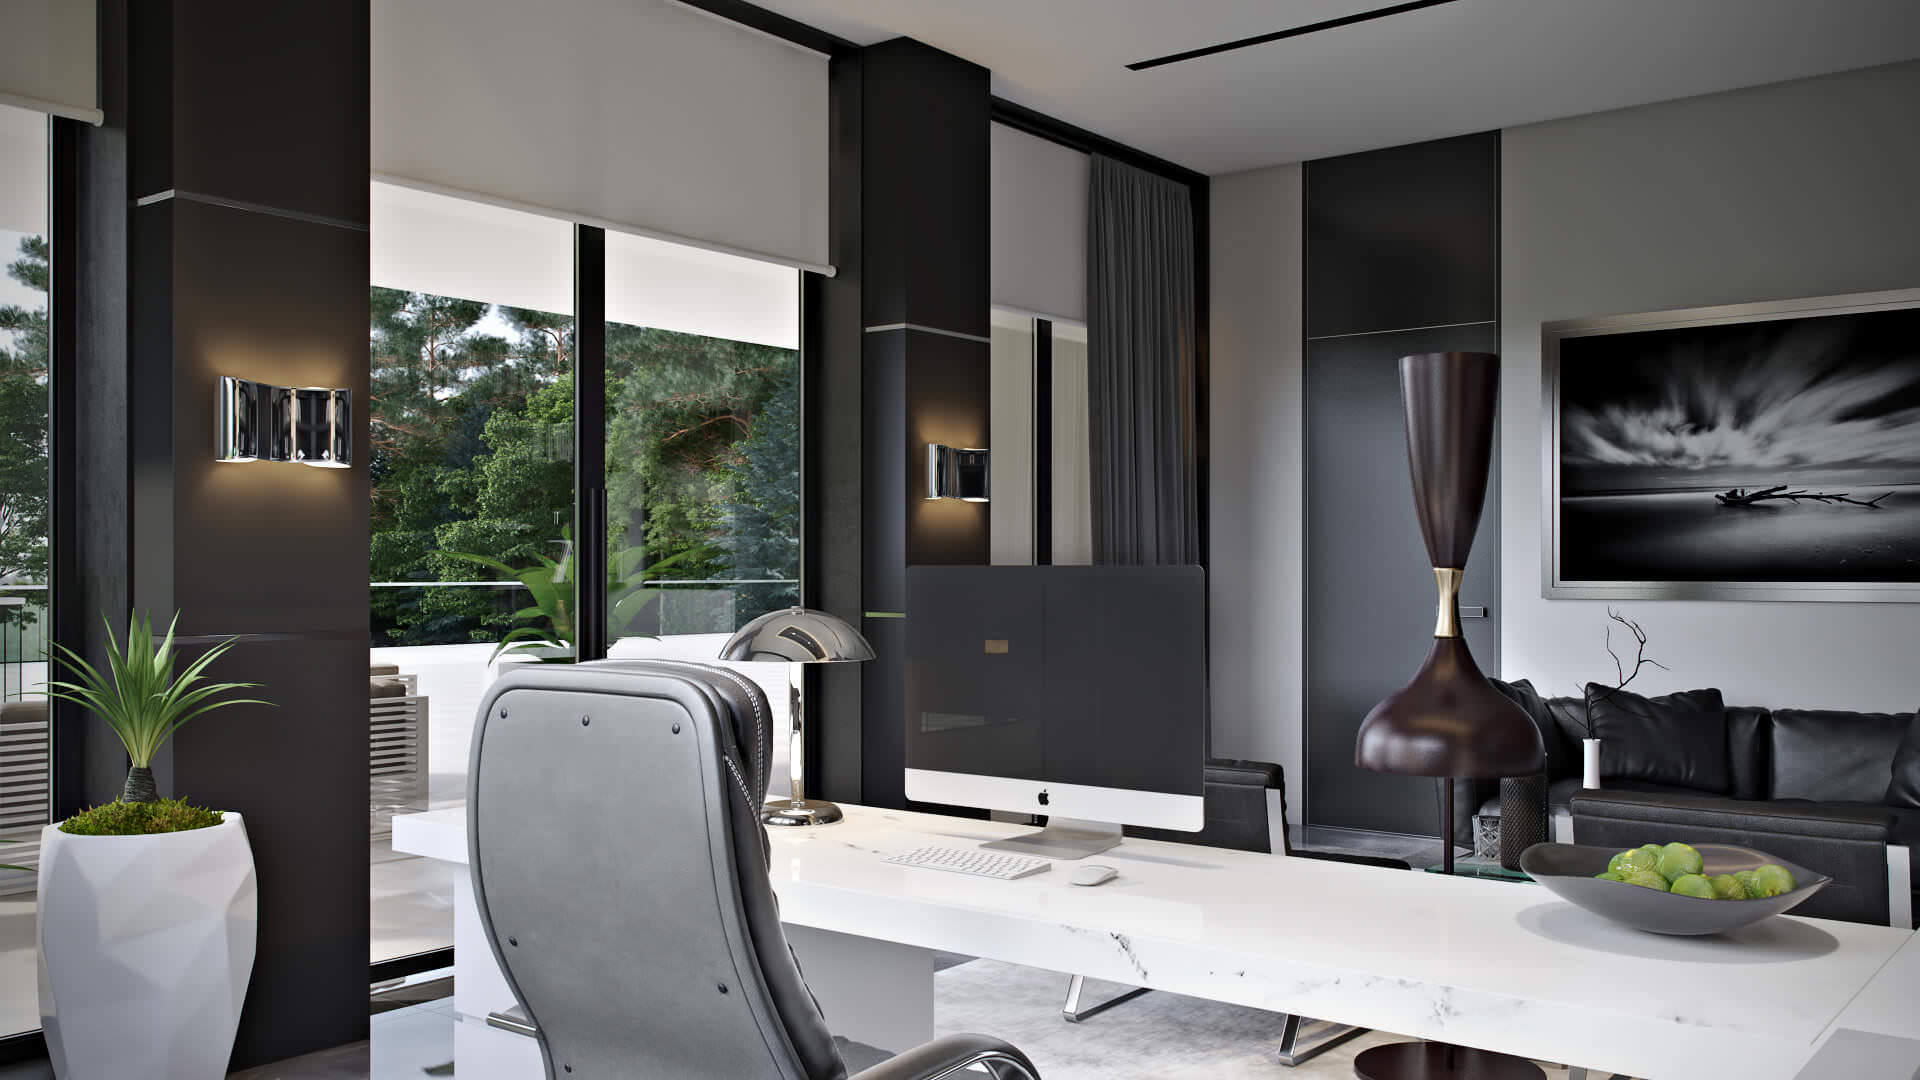 3D Rendering For Interior Design Of Office In Black View05